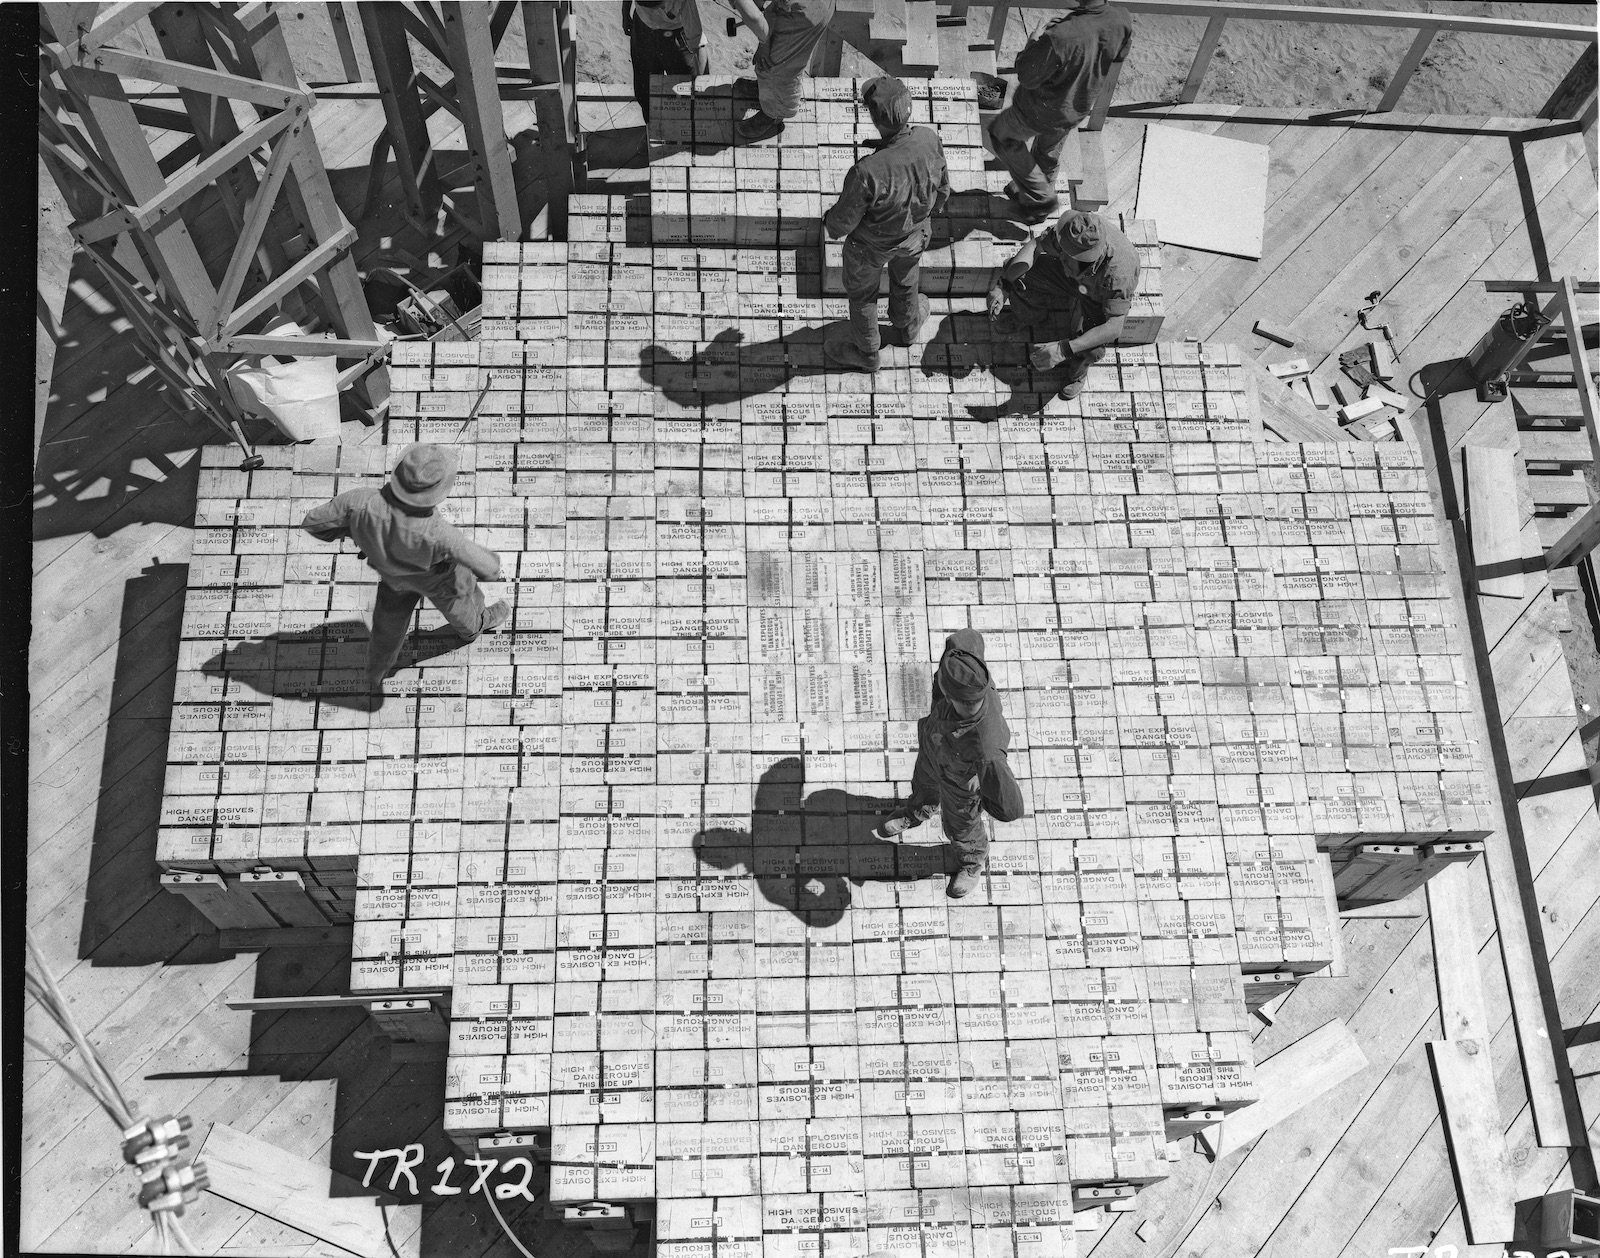 Workers stand on top of stacks of TNT.